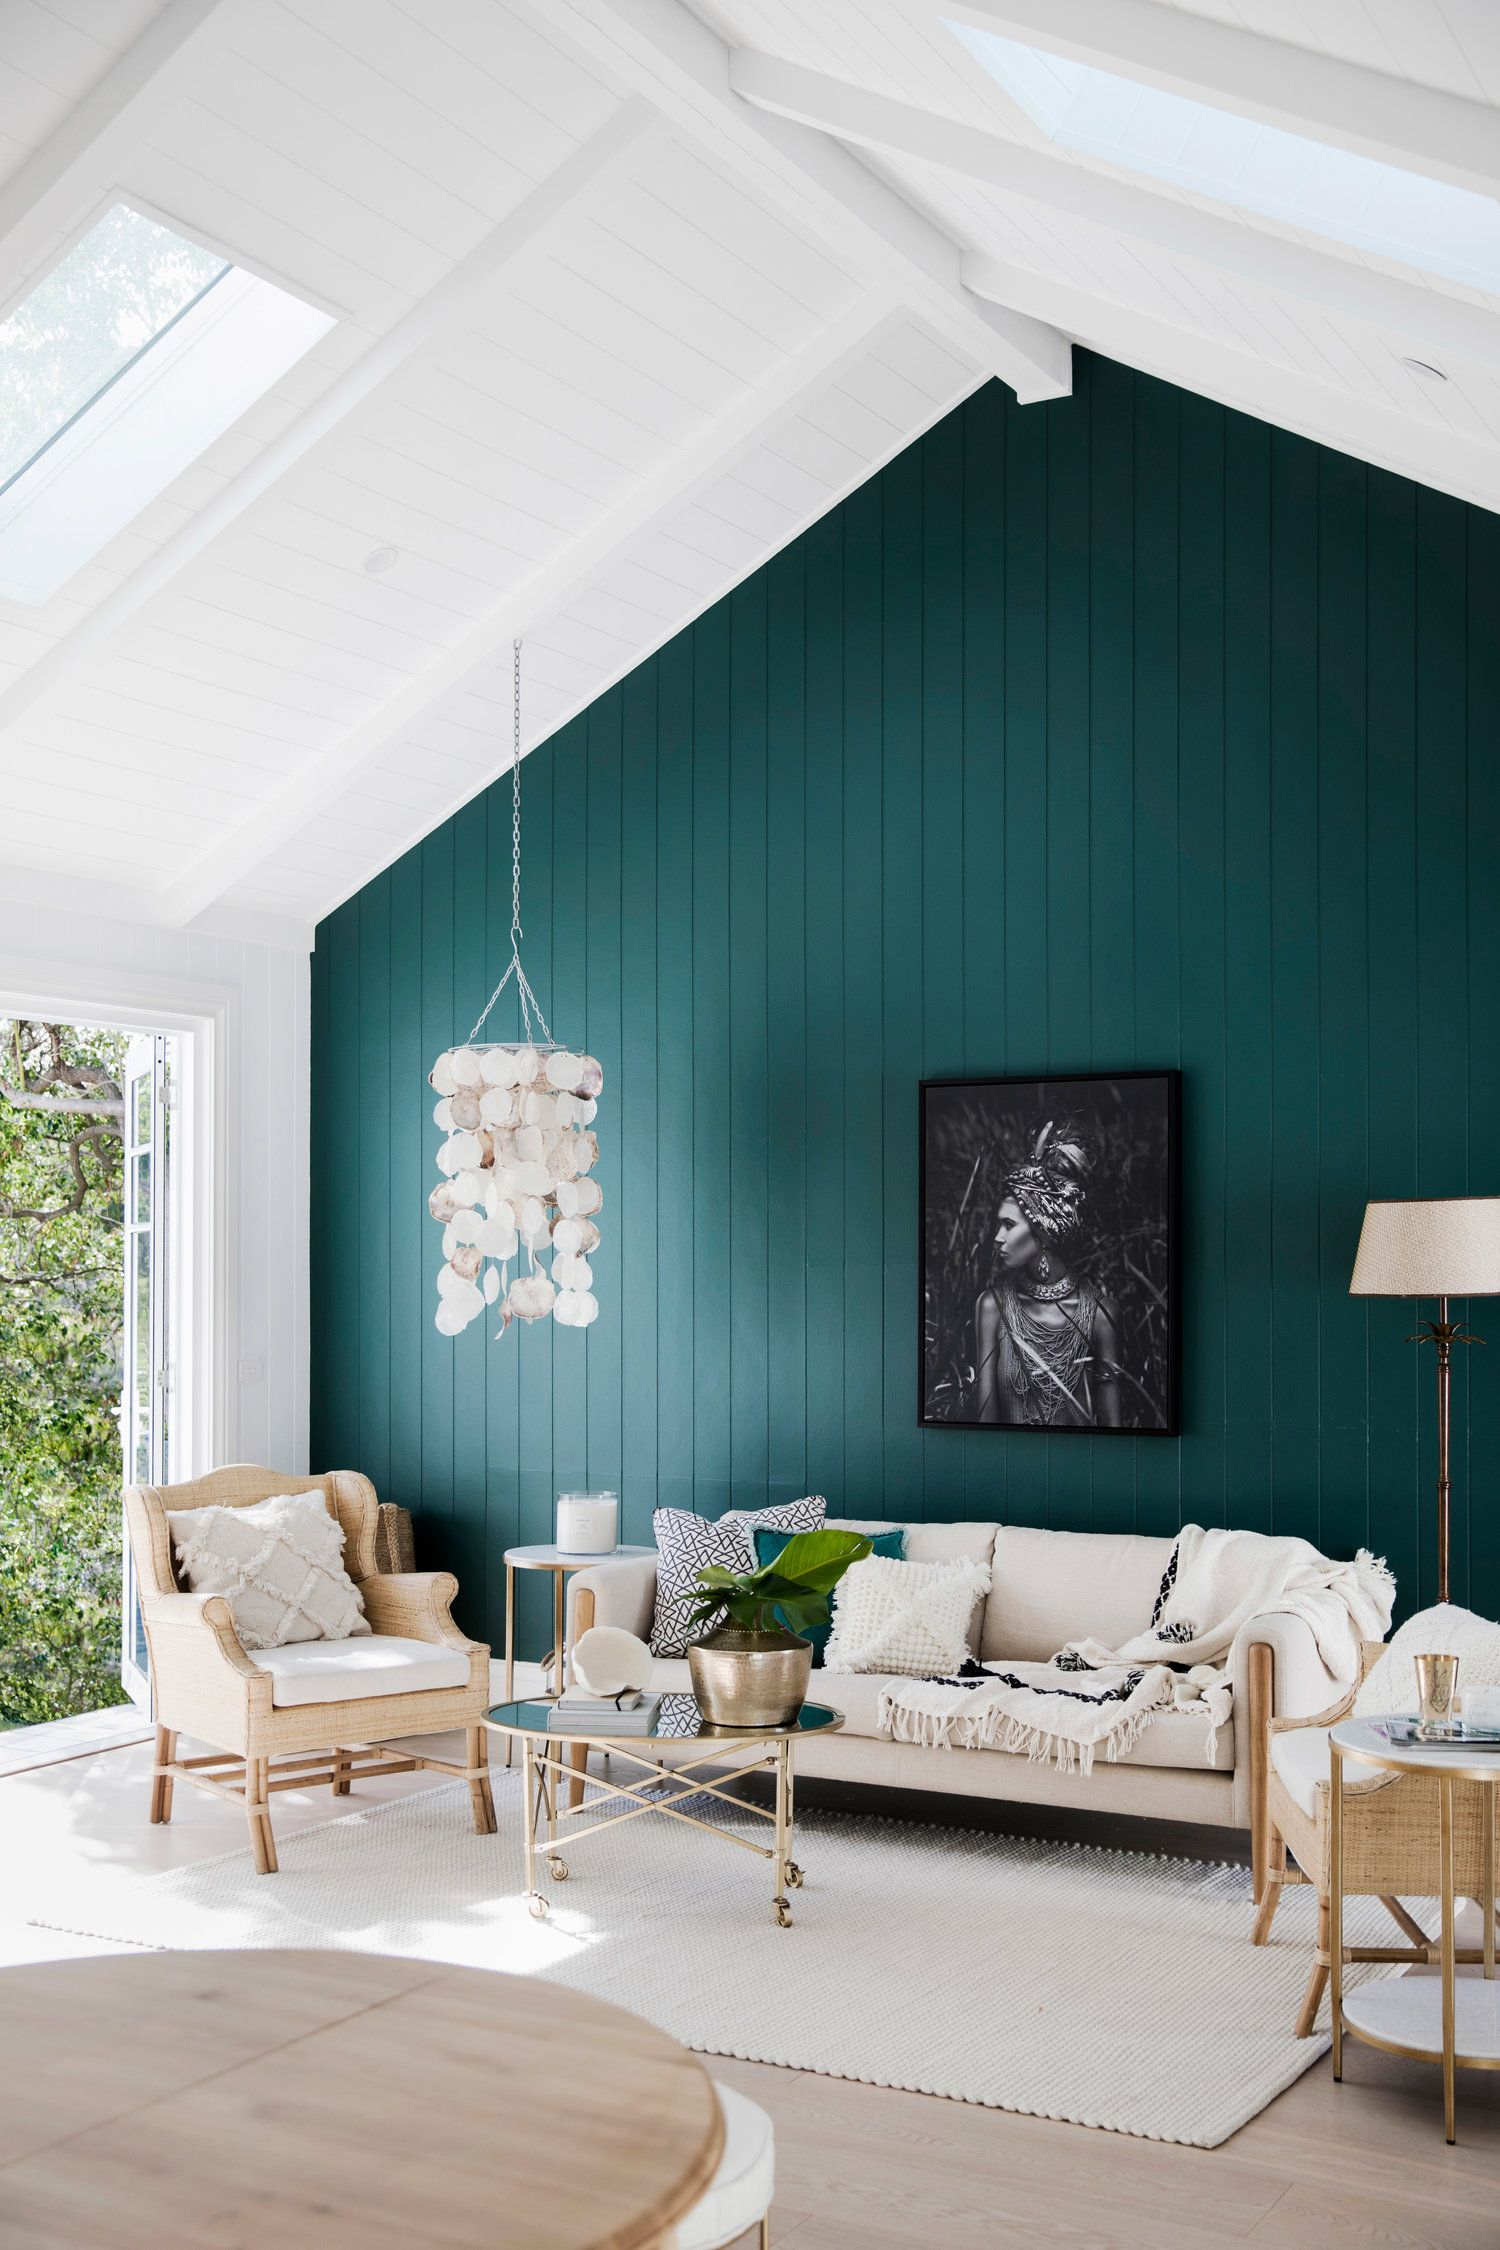 Living Room Feature Wall Design: Raked Ceiling, Green Accent Wall, White And Natural